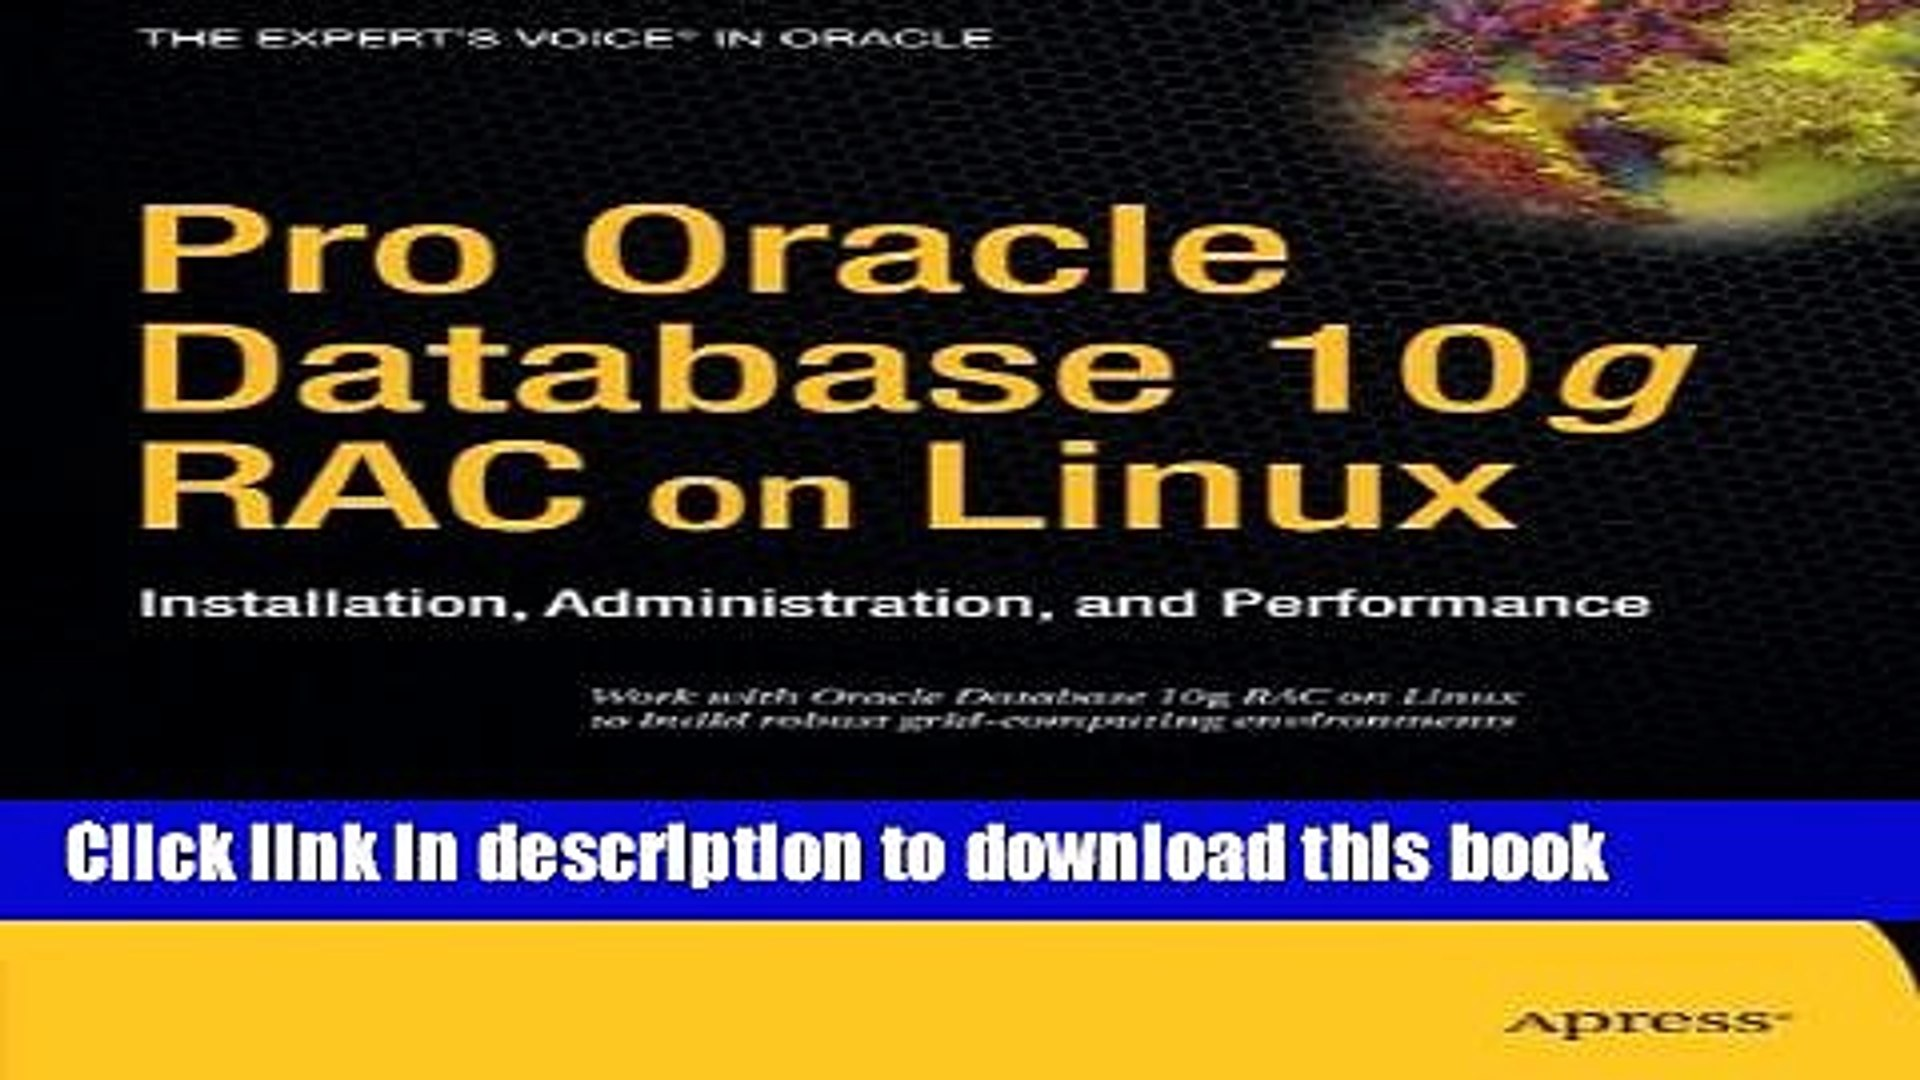 Read Pro Oracle Database 10g RAC on Linux: Installation, Administration,  and Performance (Expert s